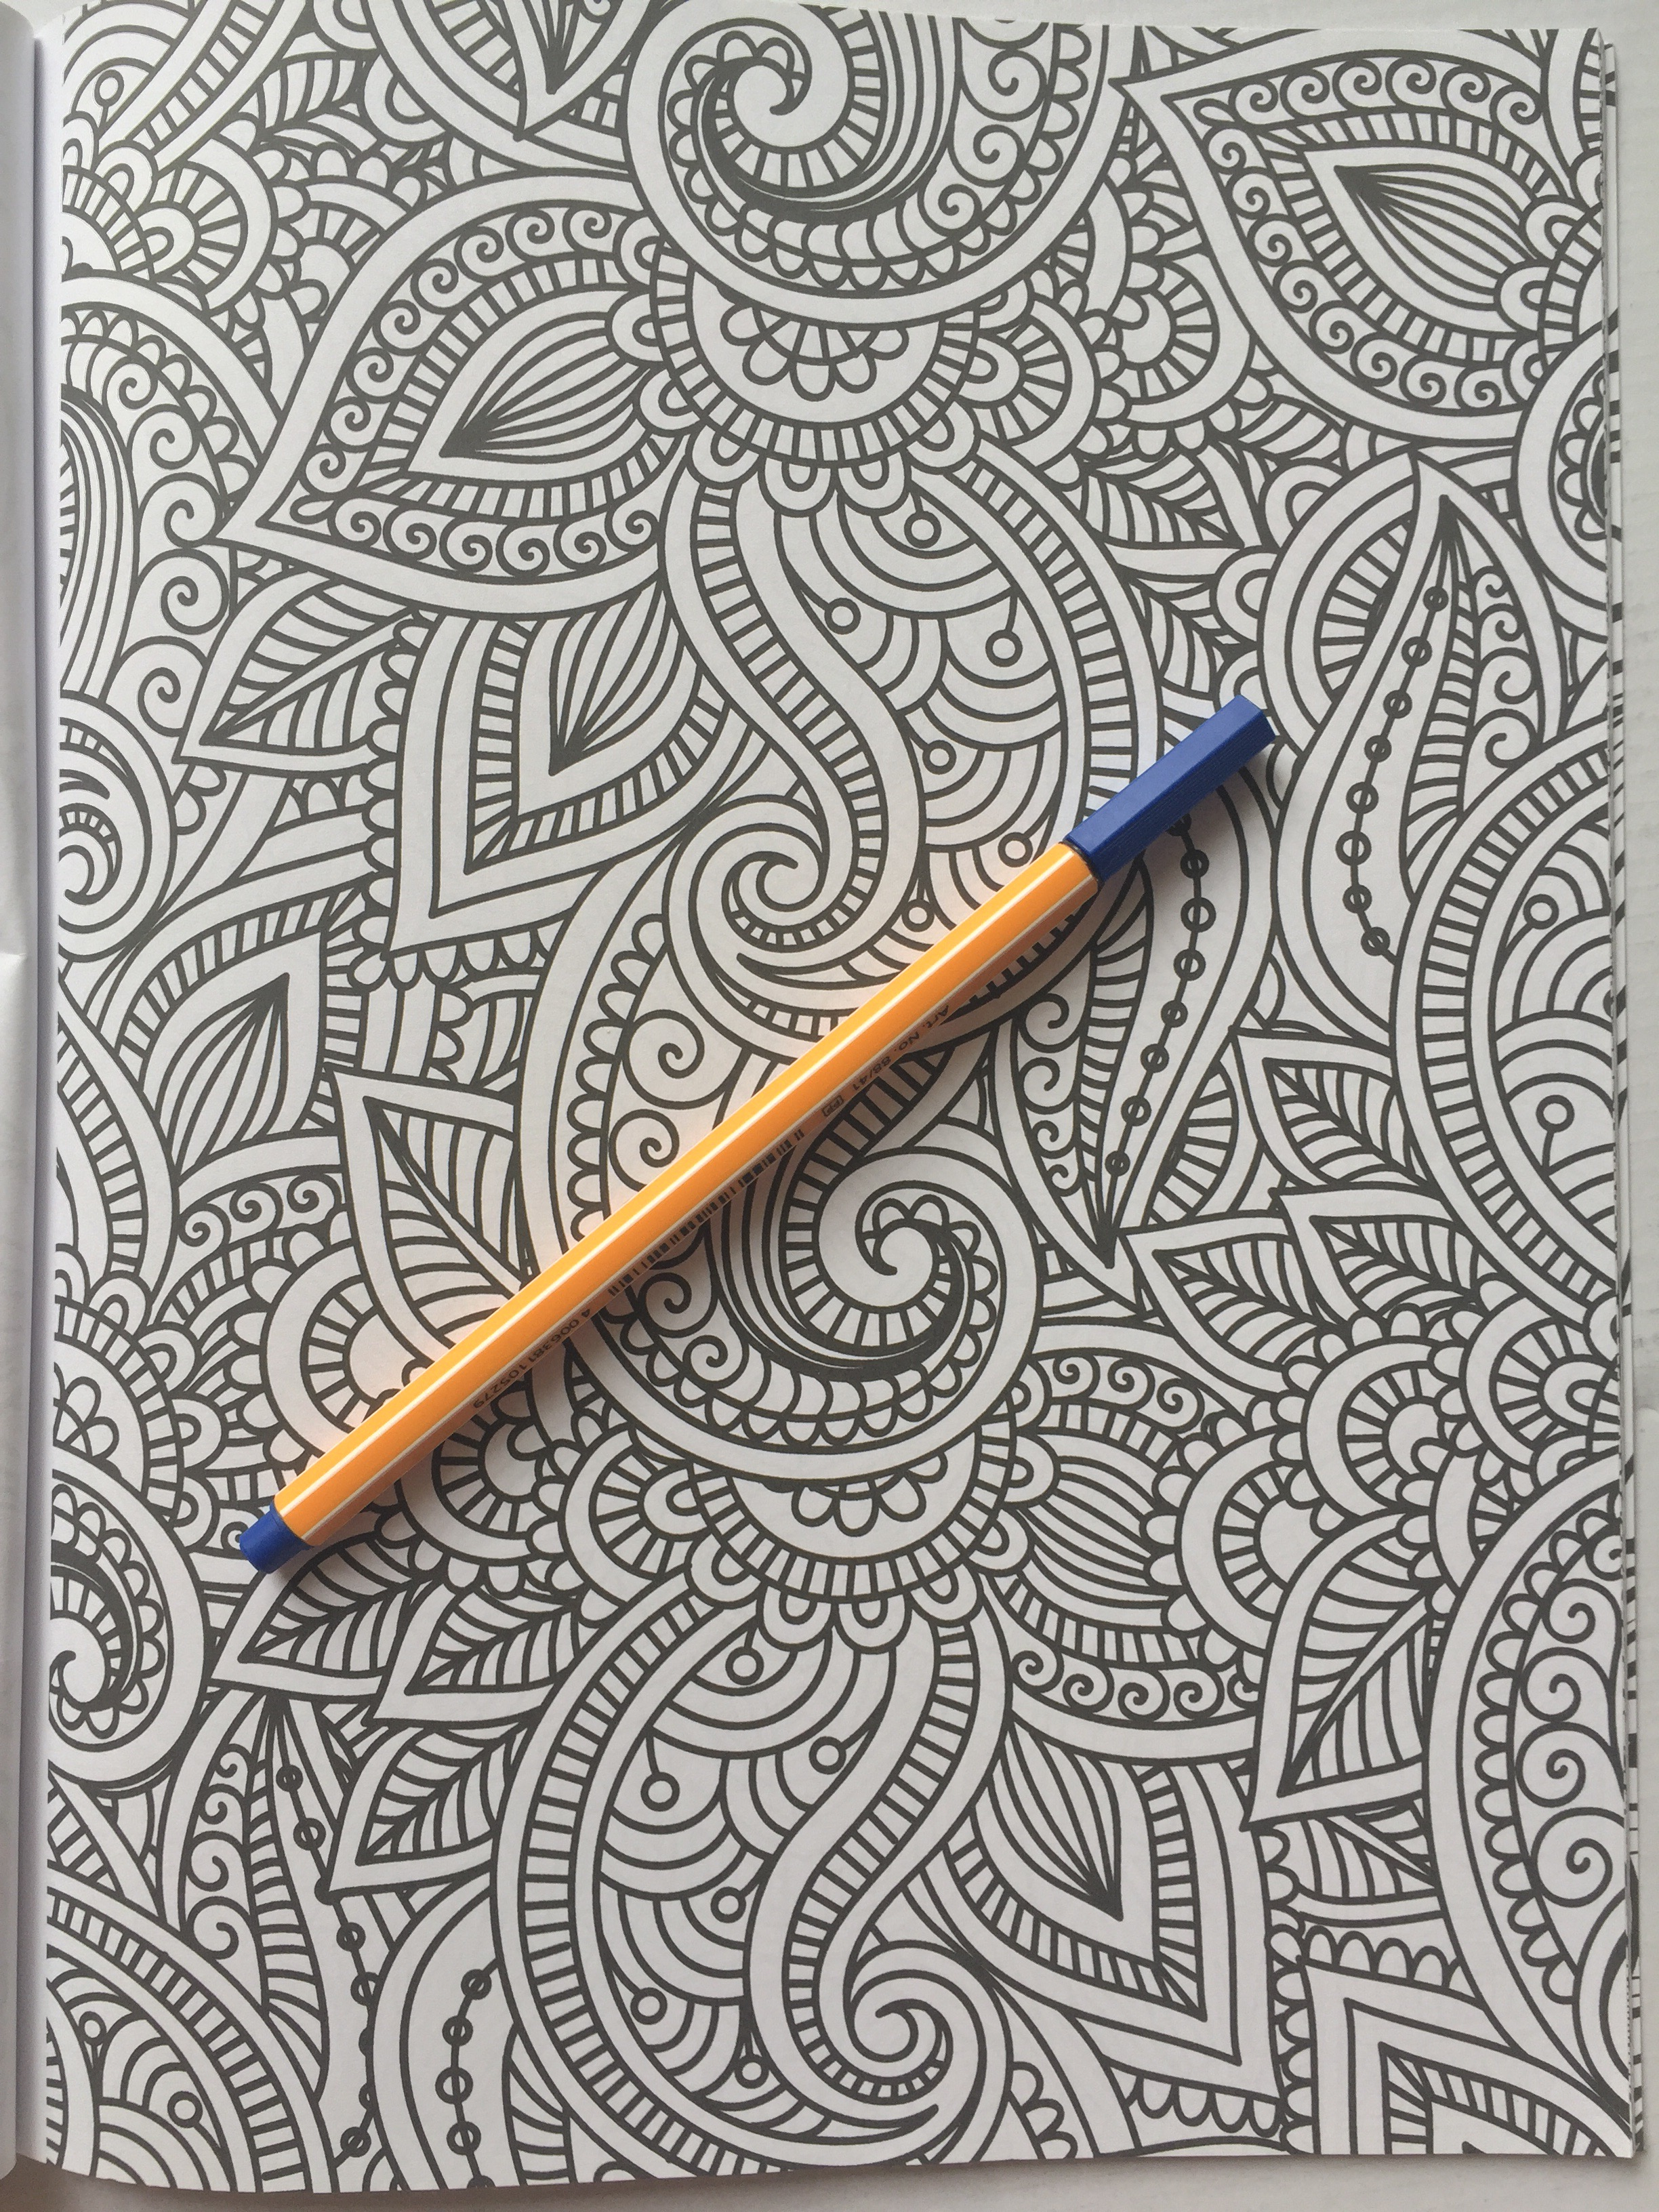 adult colouring coloring art therapy patterns coloring mandala stess relief coloring book colouring book reviews pencils